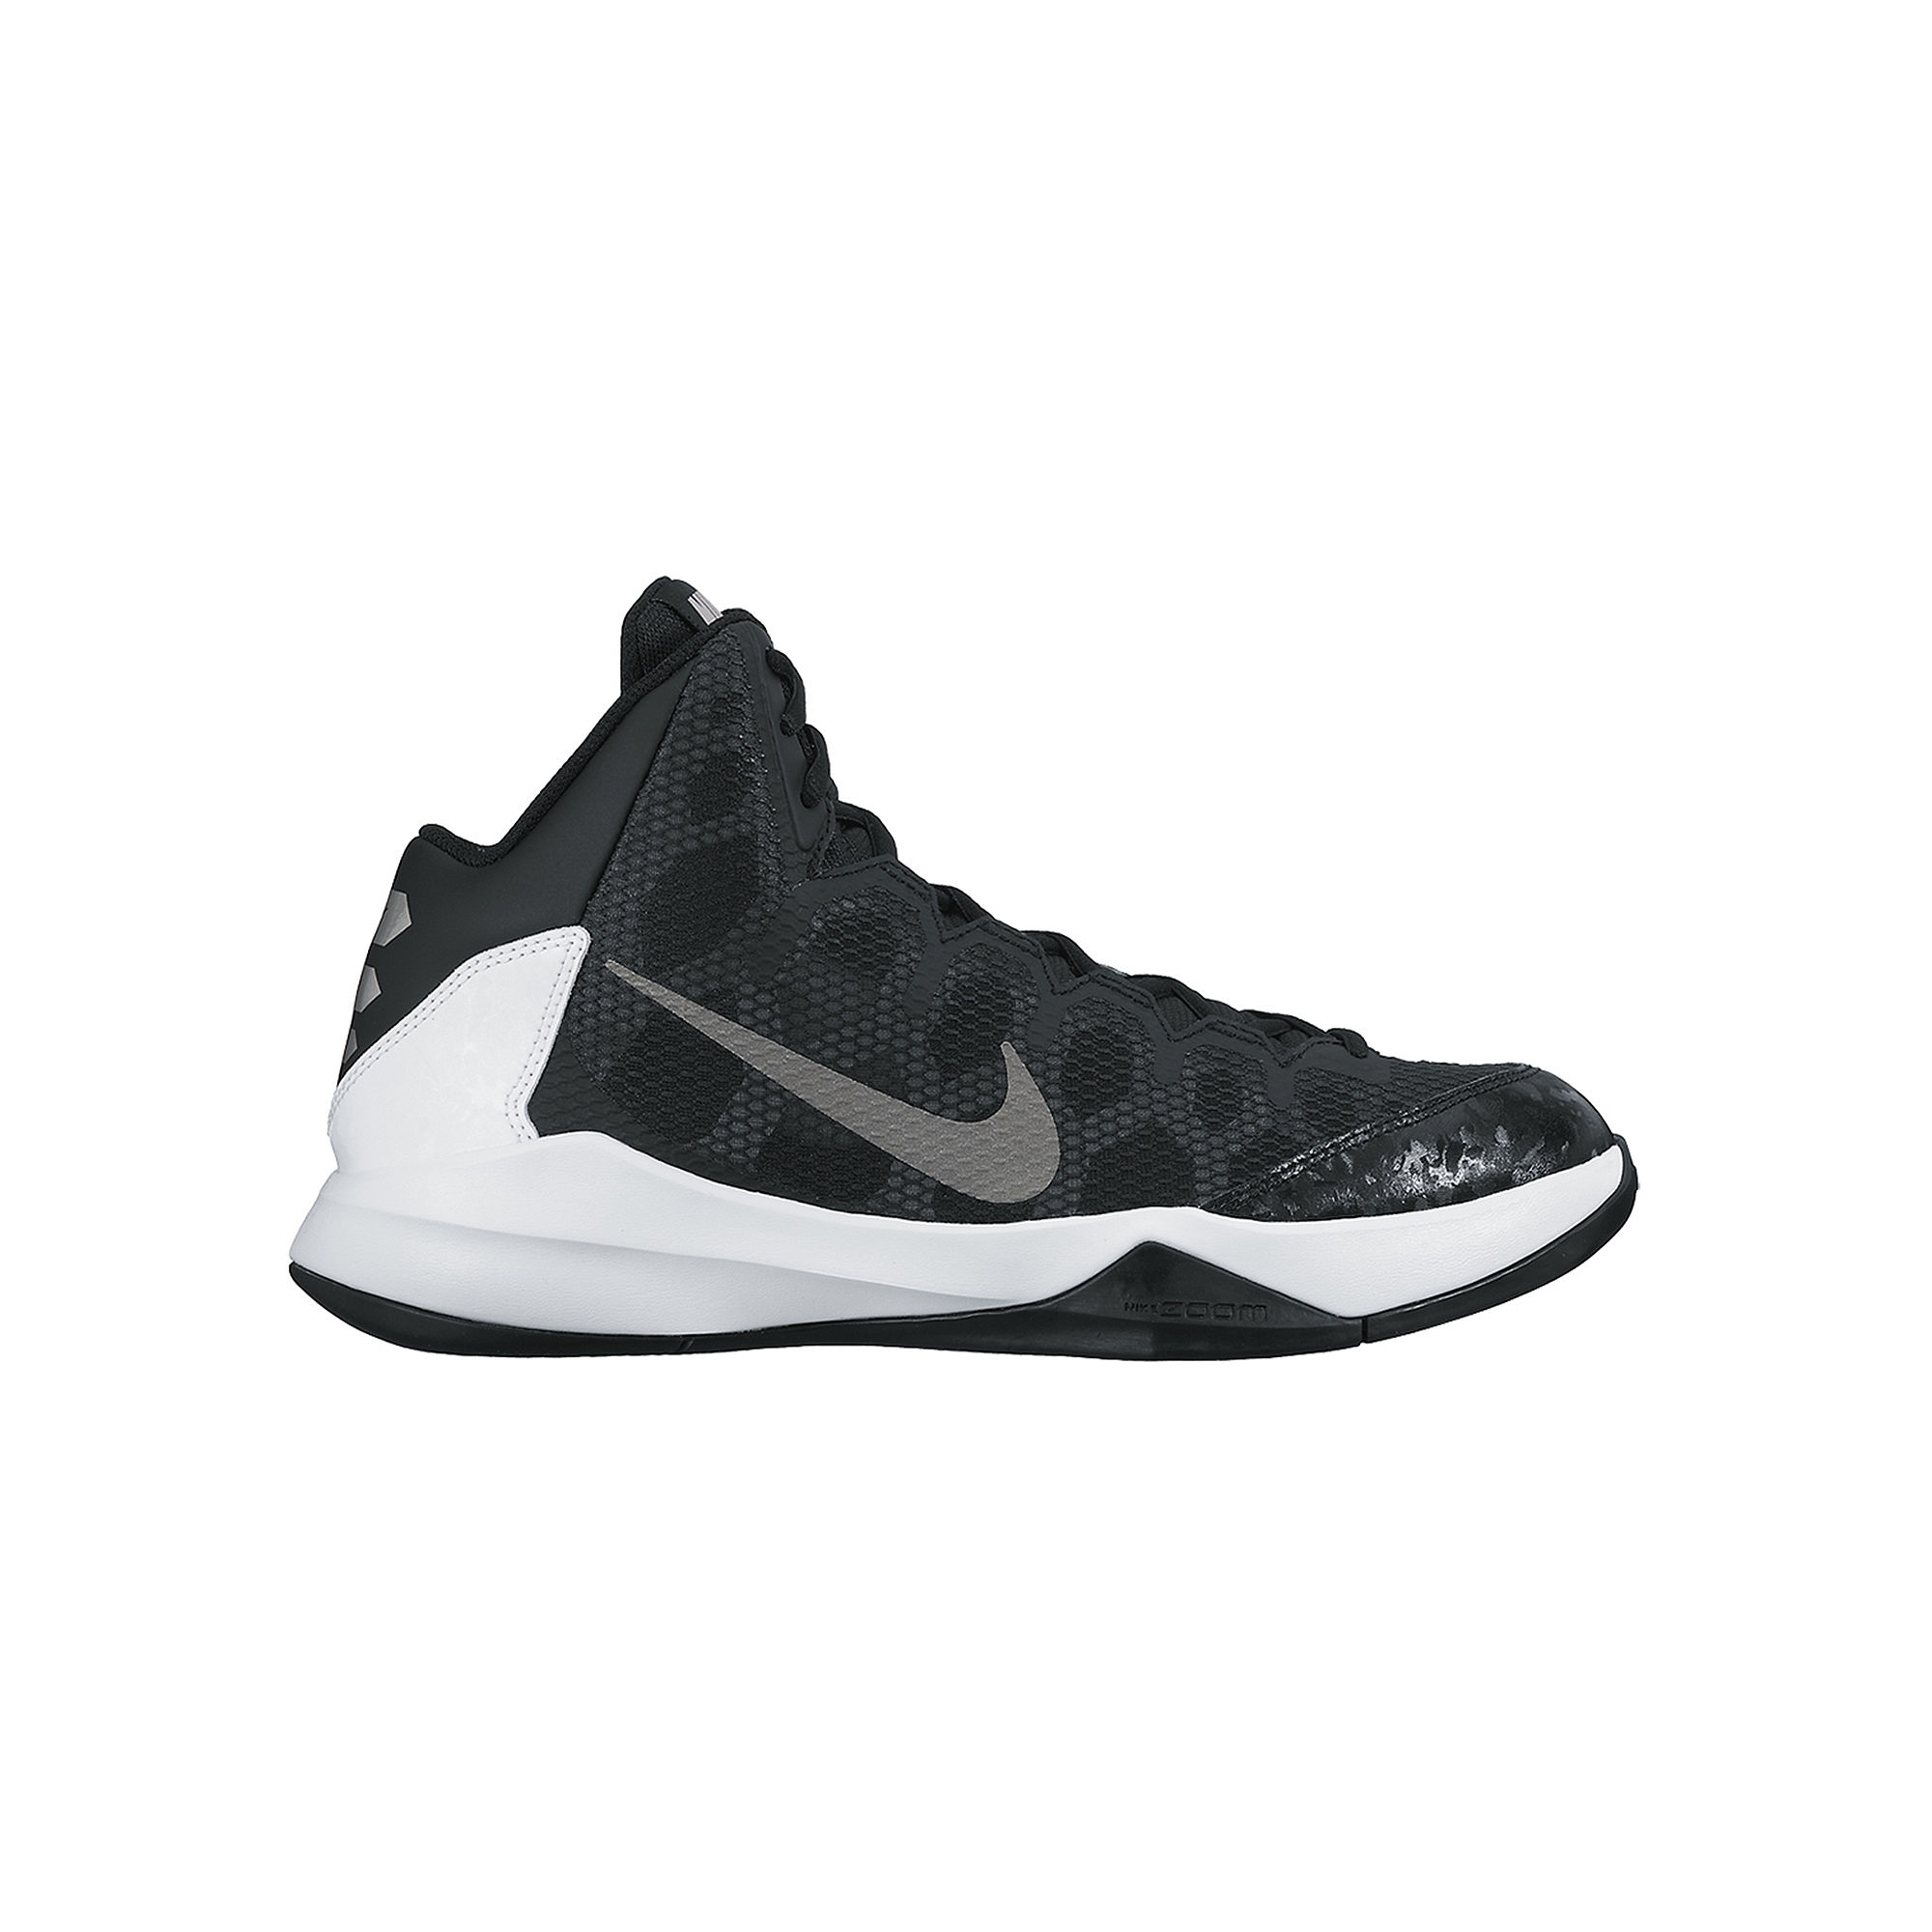 84ac49a9a3a8 ... UPC 888409767126 product image for Nike Zoom Without a Doubt Mens  Basketball Shoes